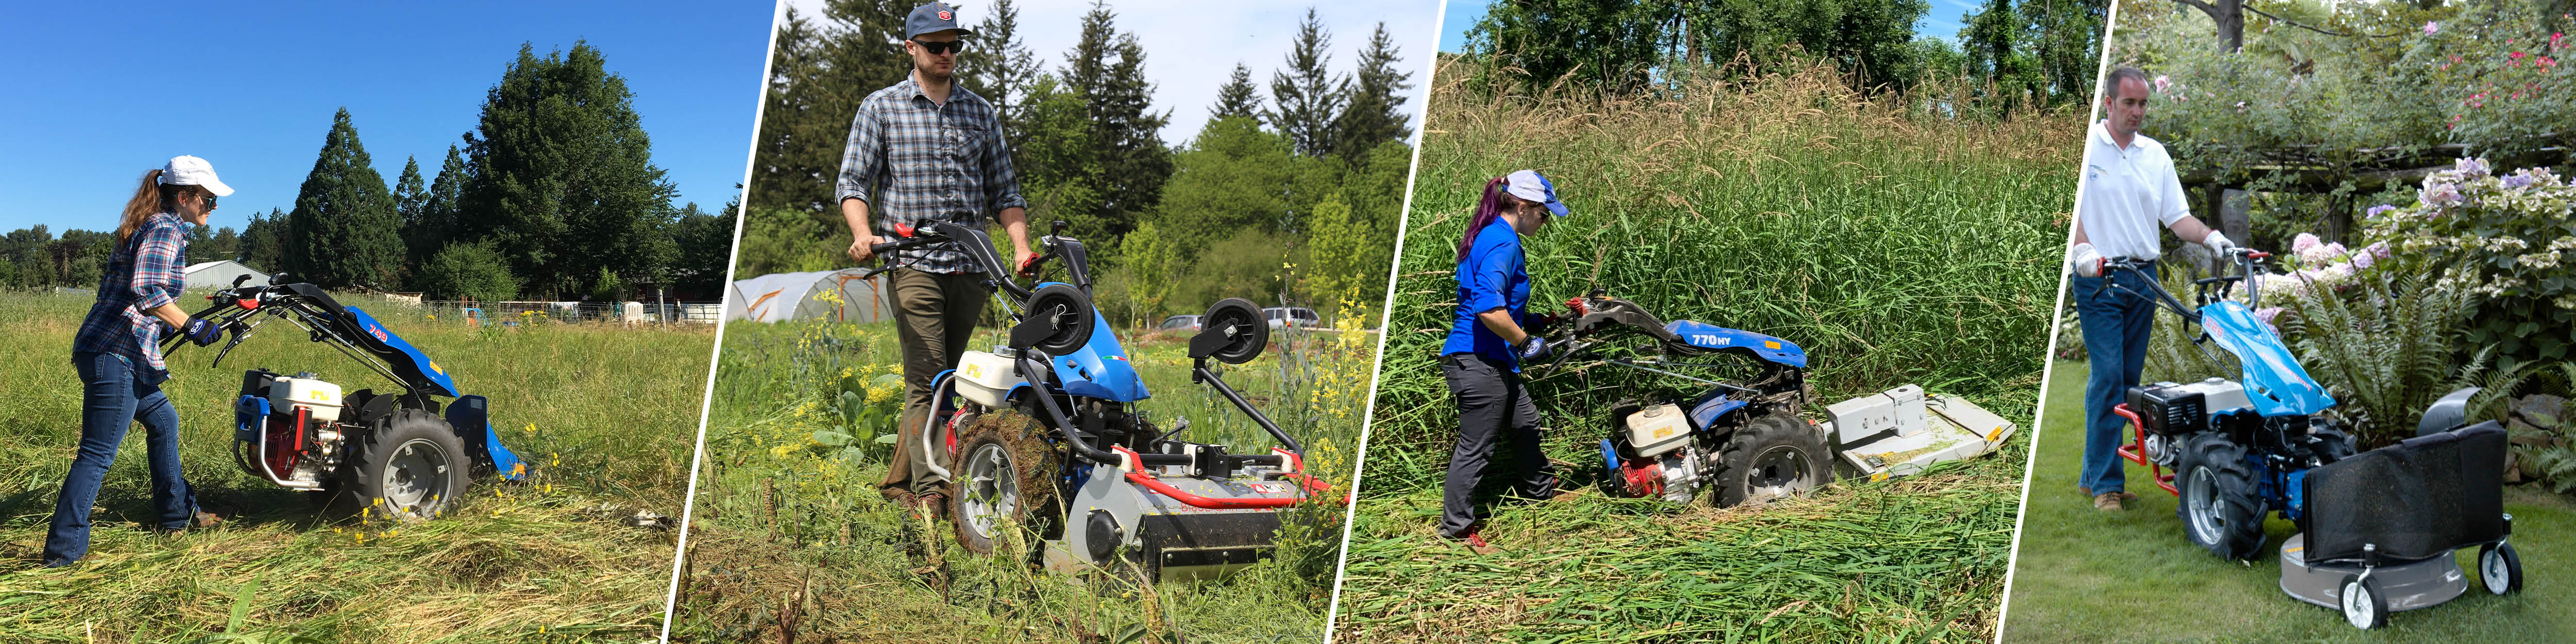 Two-Wheel Tractors Can Mow Anywhere